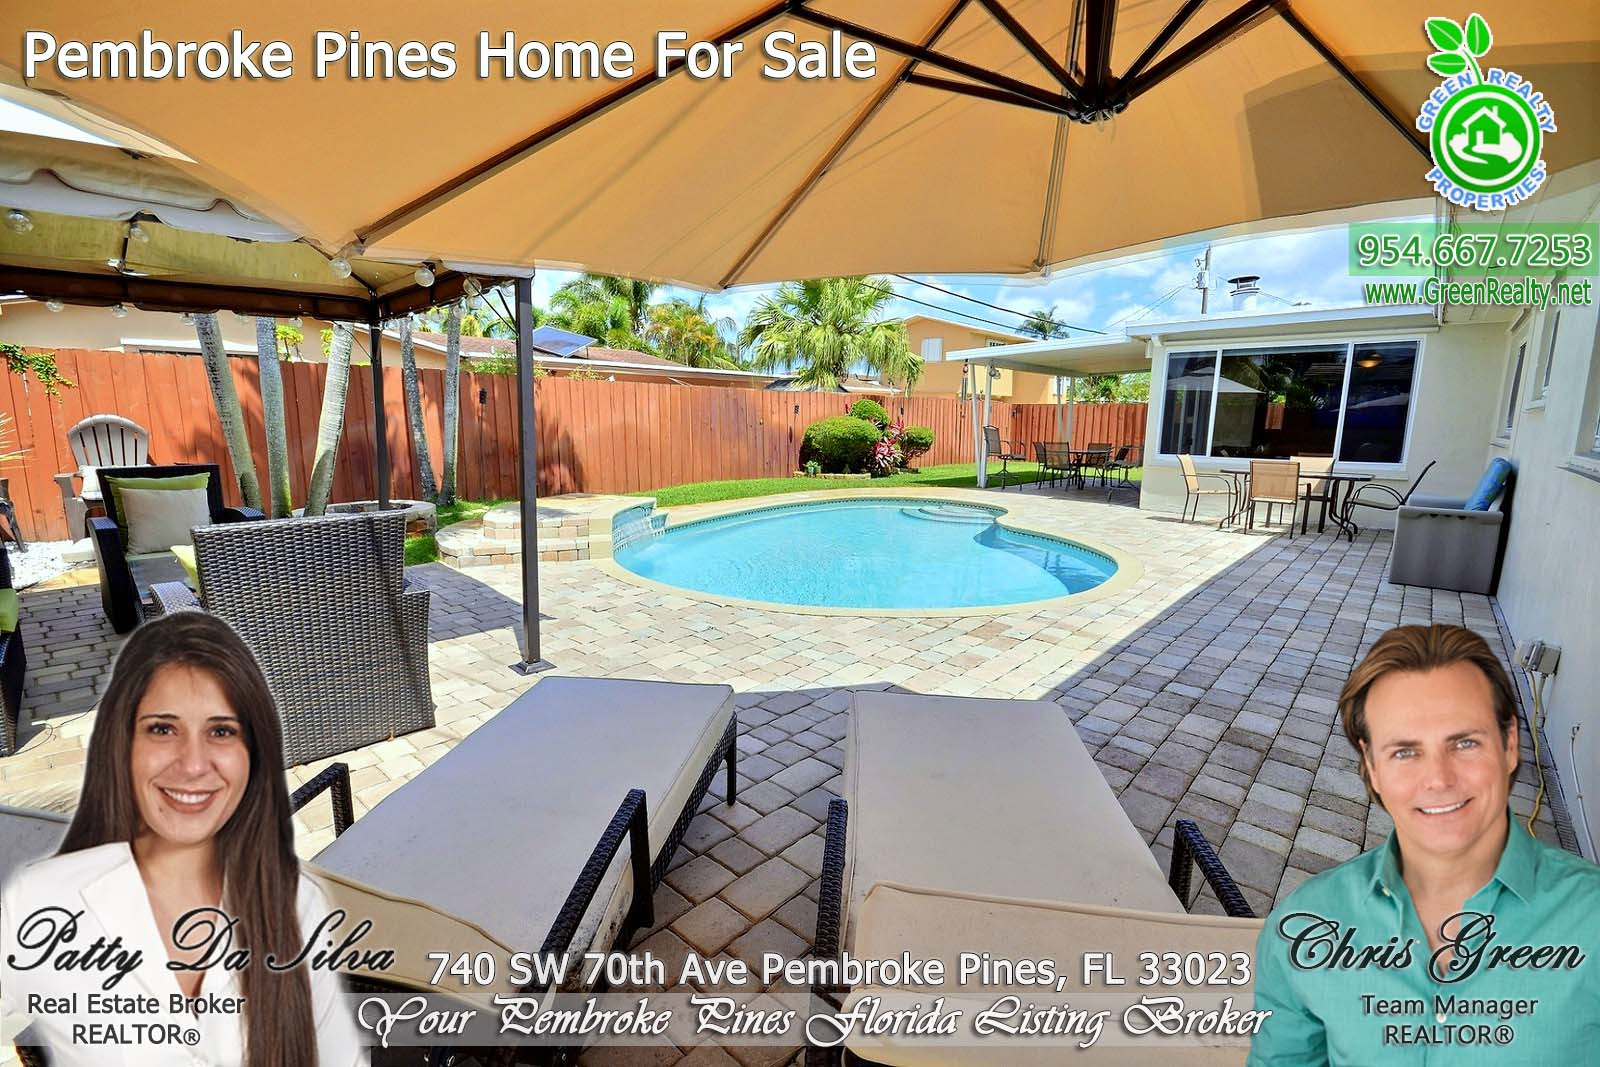 24 Homes For Sale in Pembroke Pines (3)